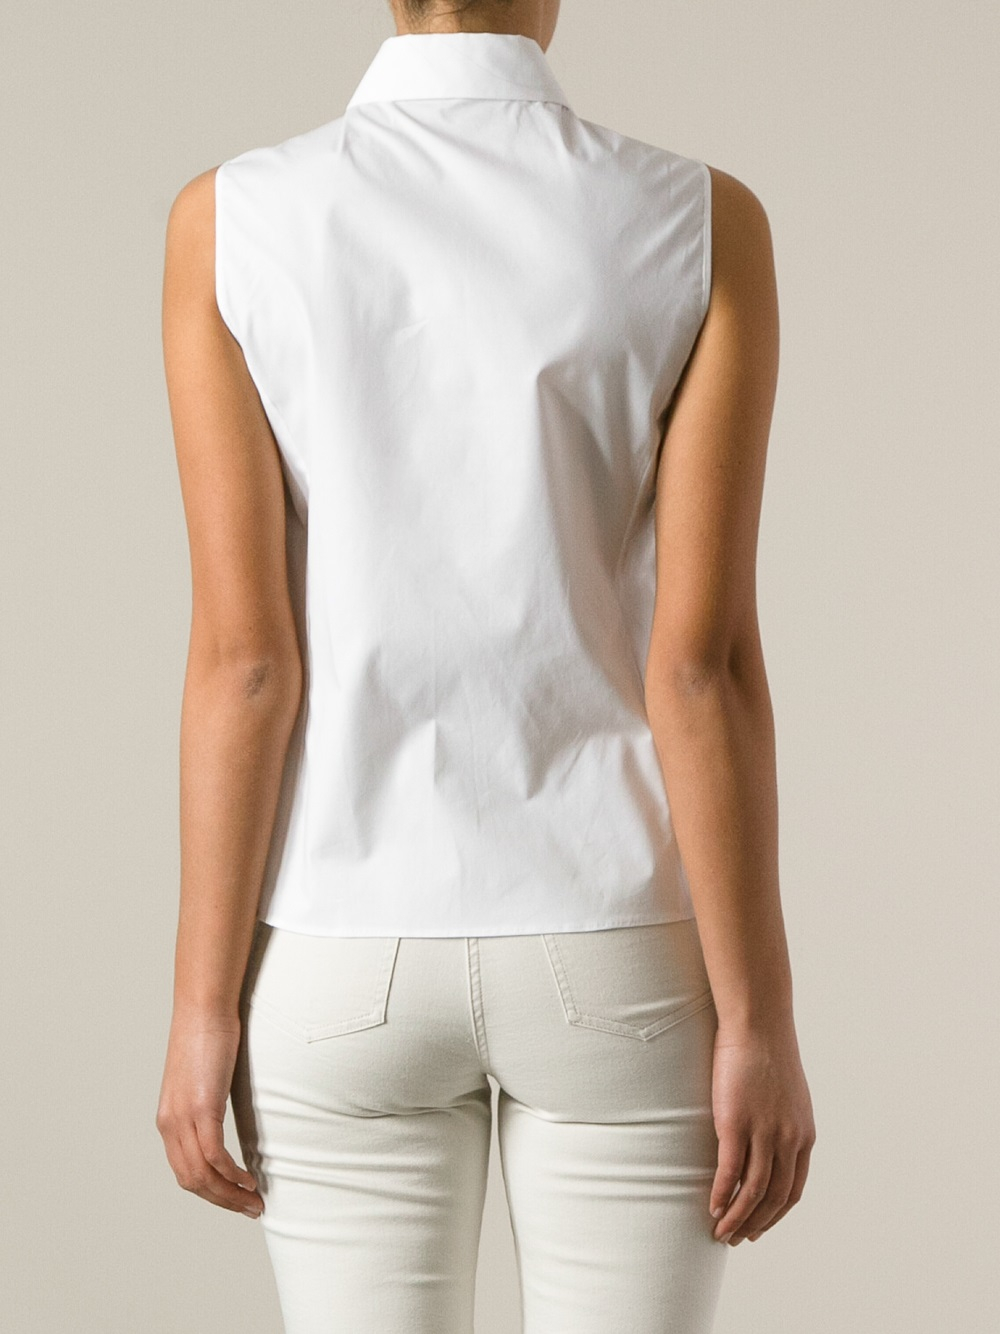 Jil sander navy Sleeveless Shirt in White | Lyst